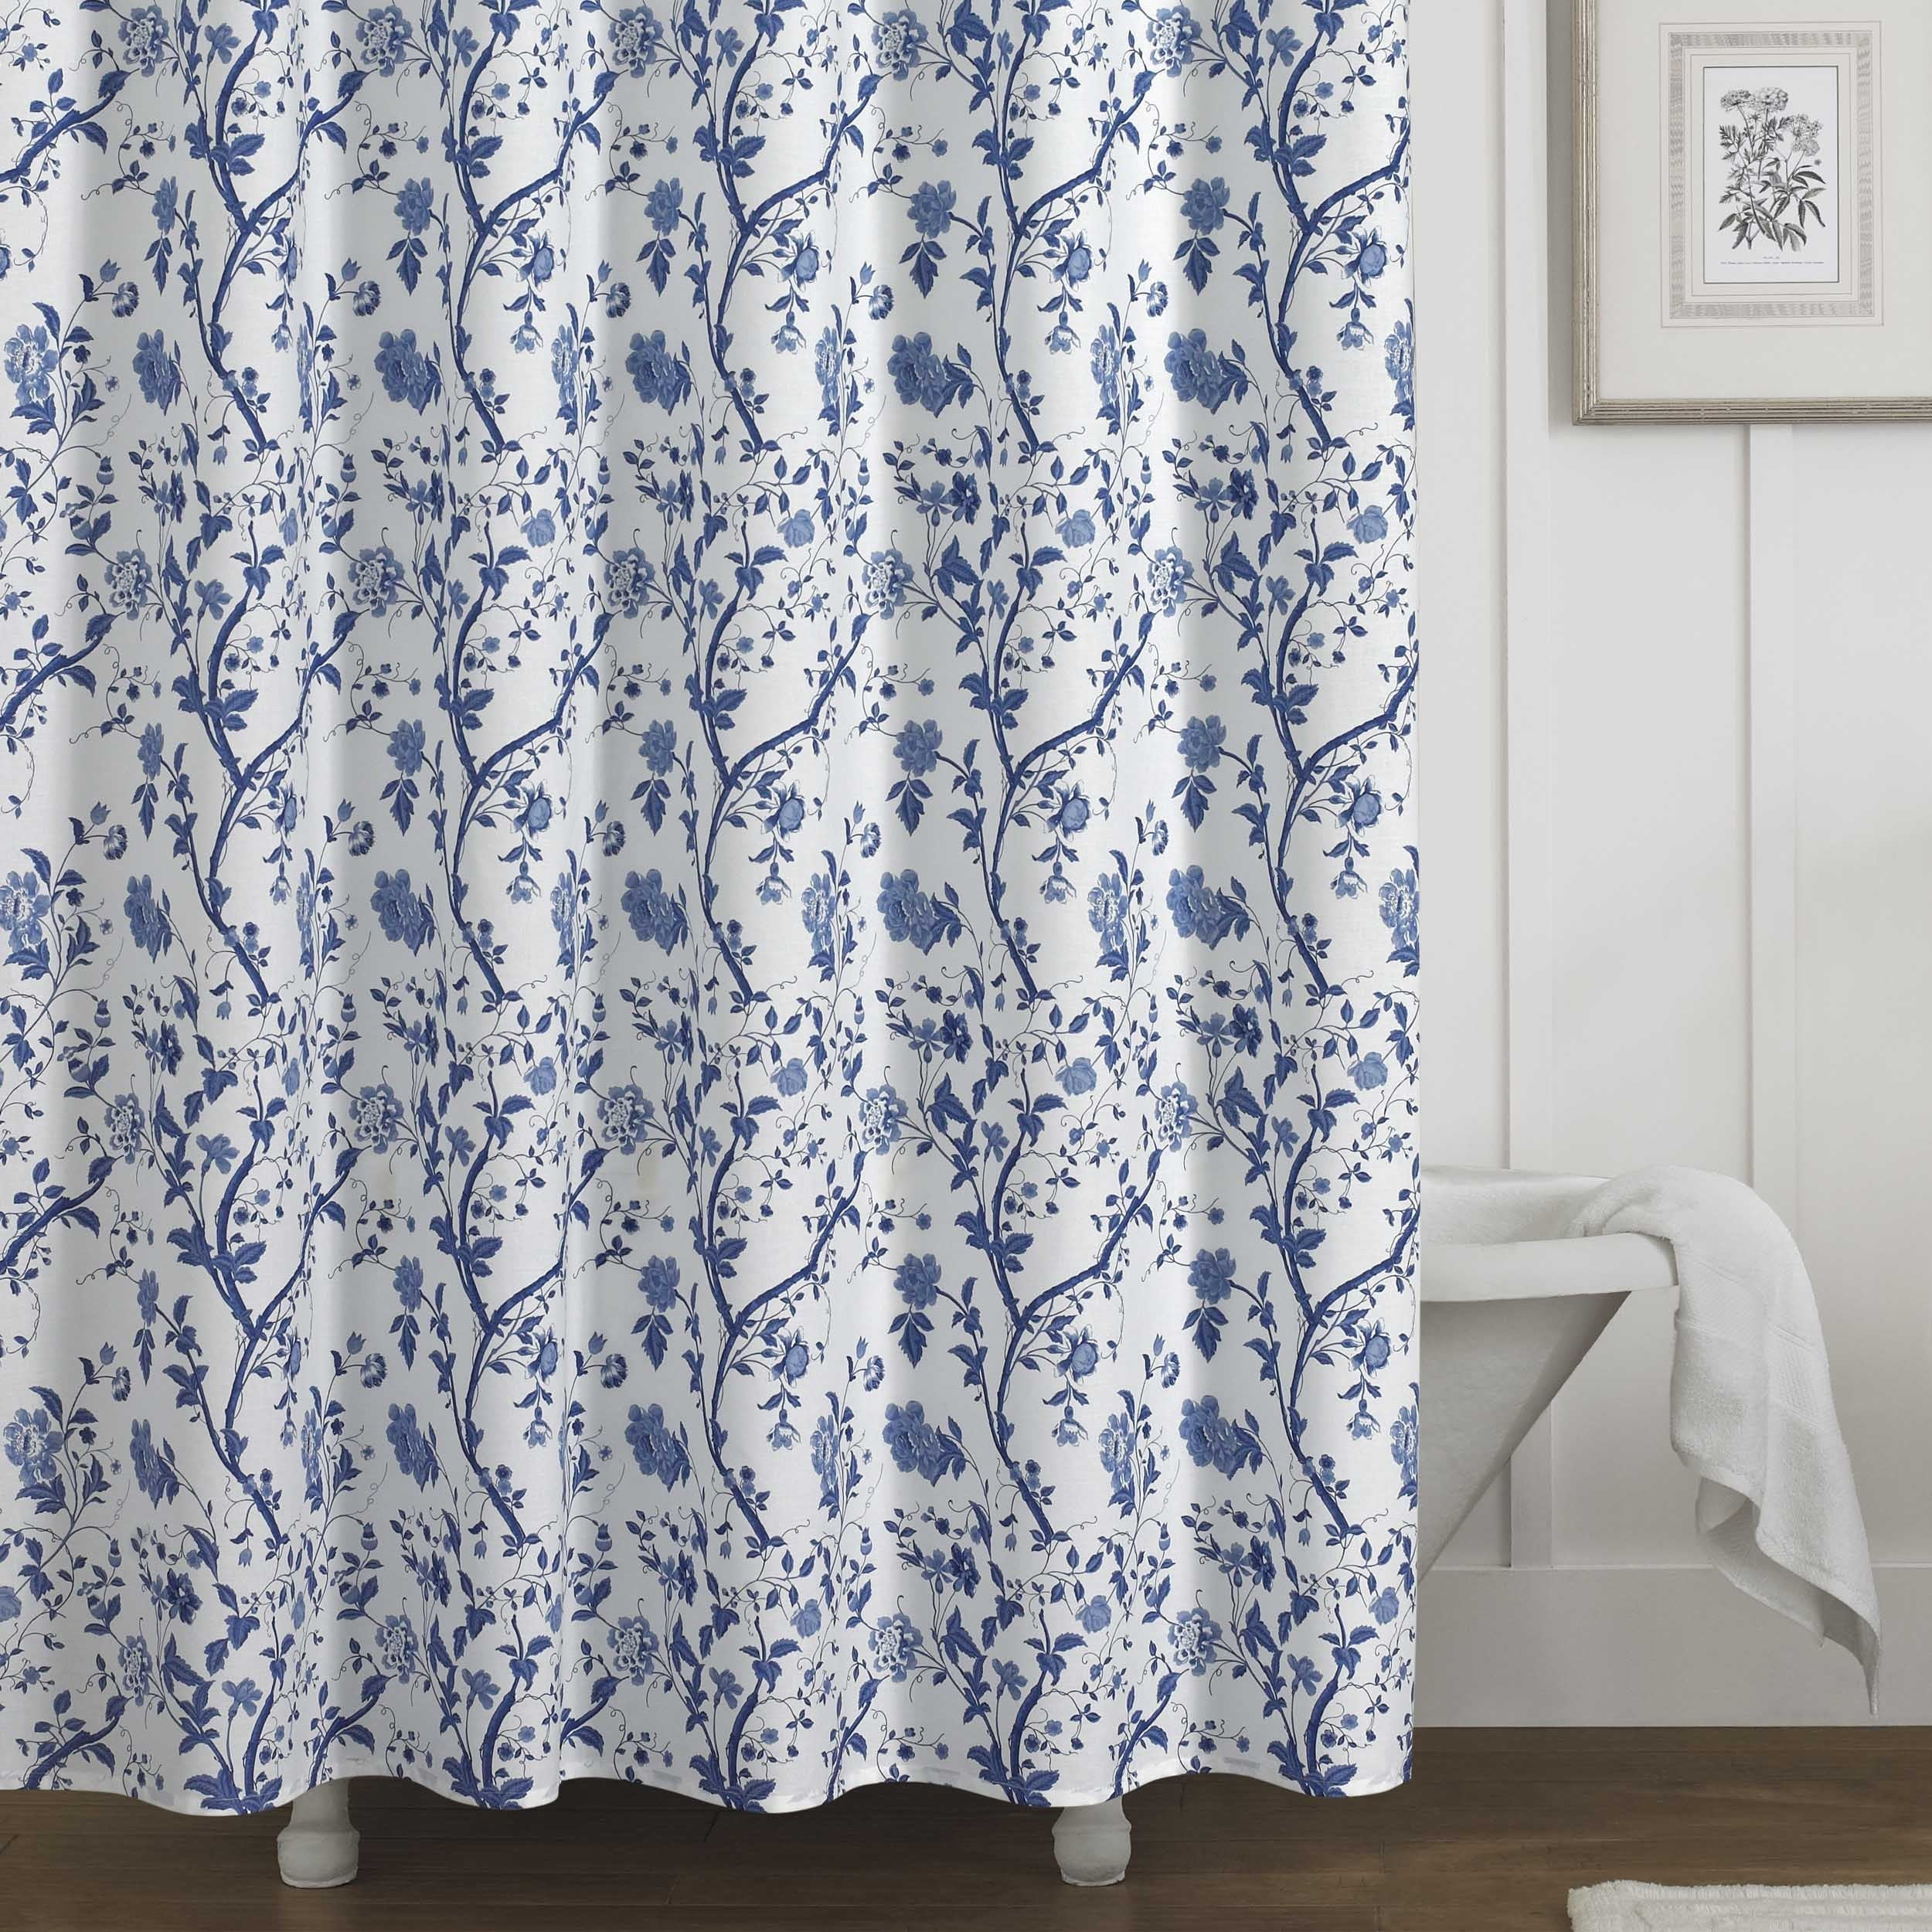 Laura Ashley Charlotte Blue And White Floral Cotton Shower Curtain 72 X 72